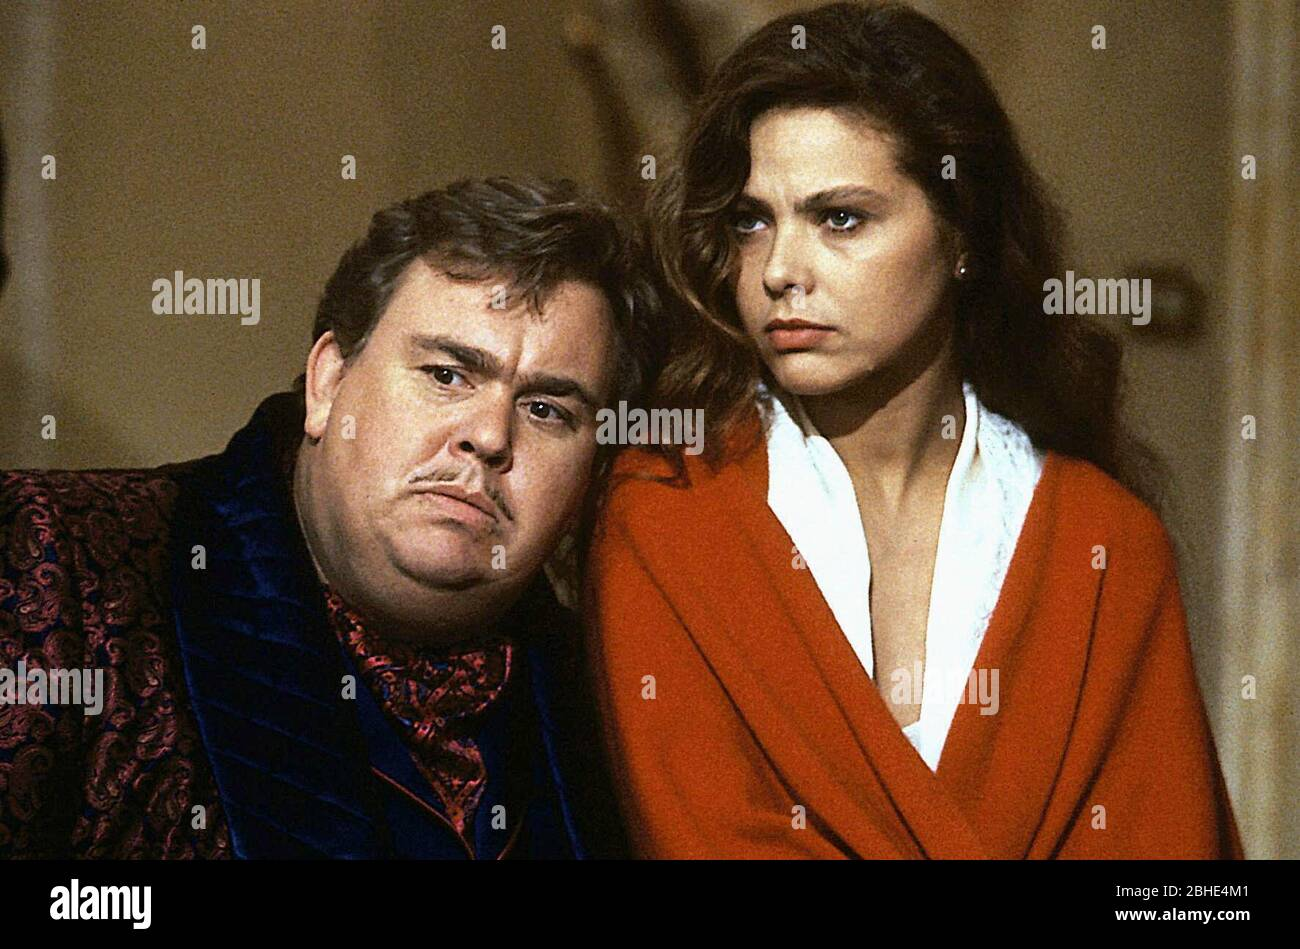 JOHN CANDY, ORNELLA MUTI, ONCE UPON A CRIME..., 1992 Stock Photo